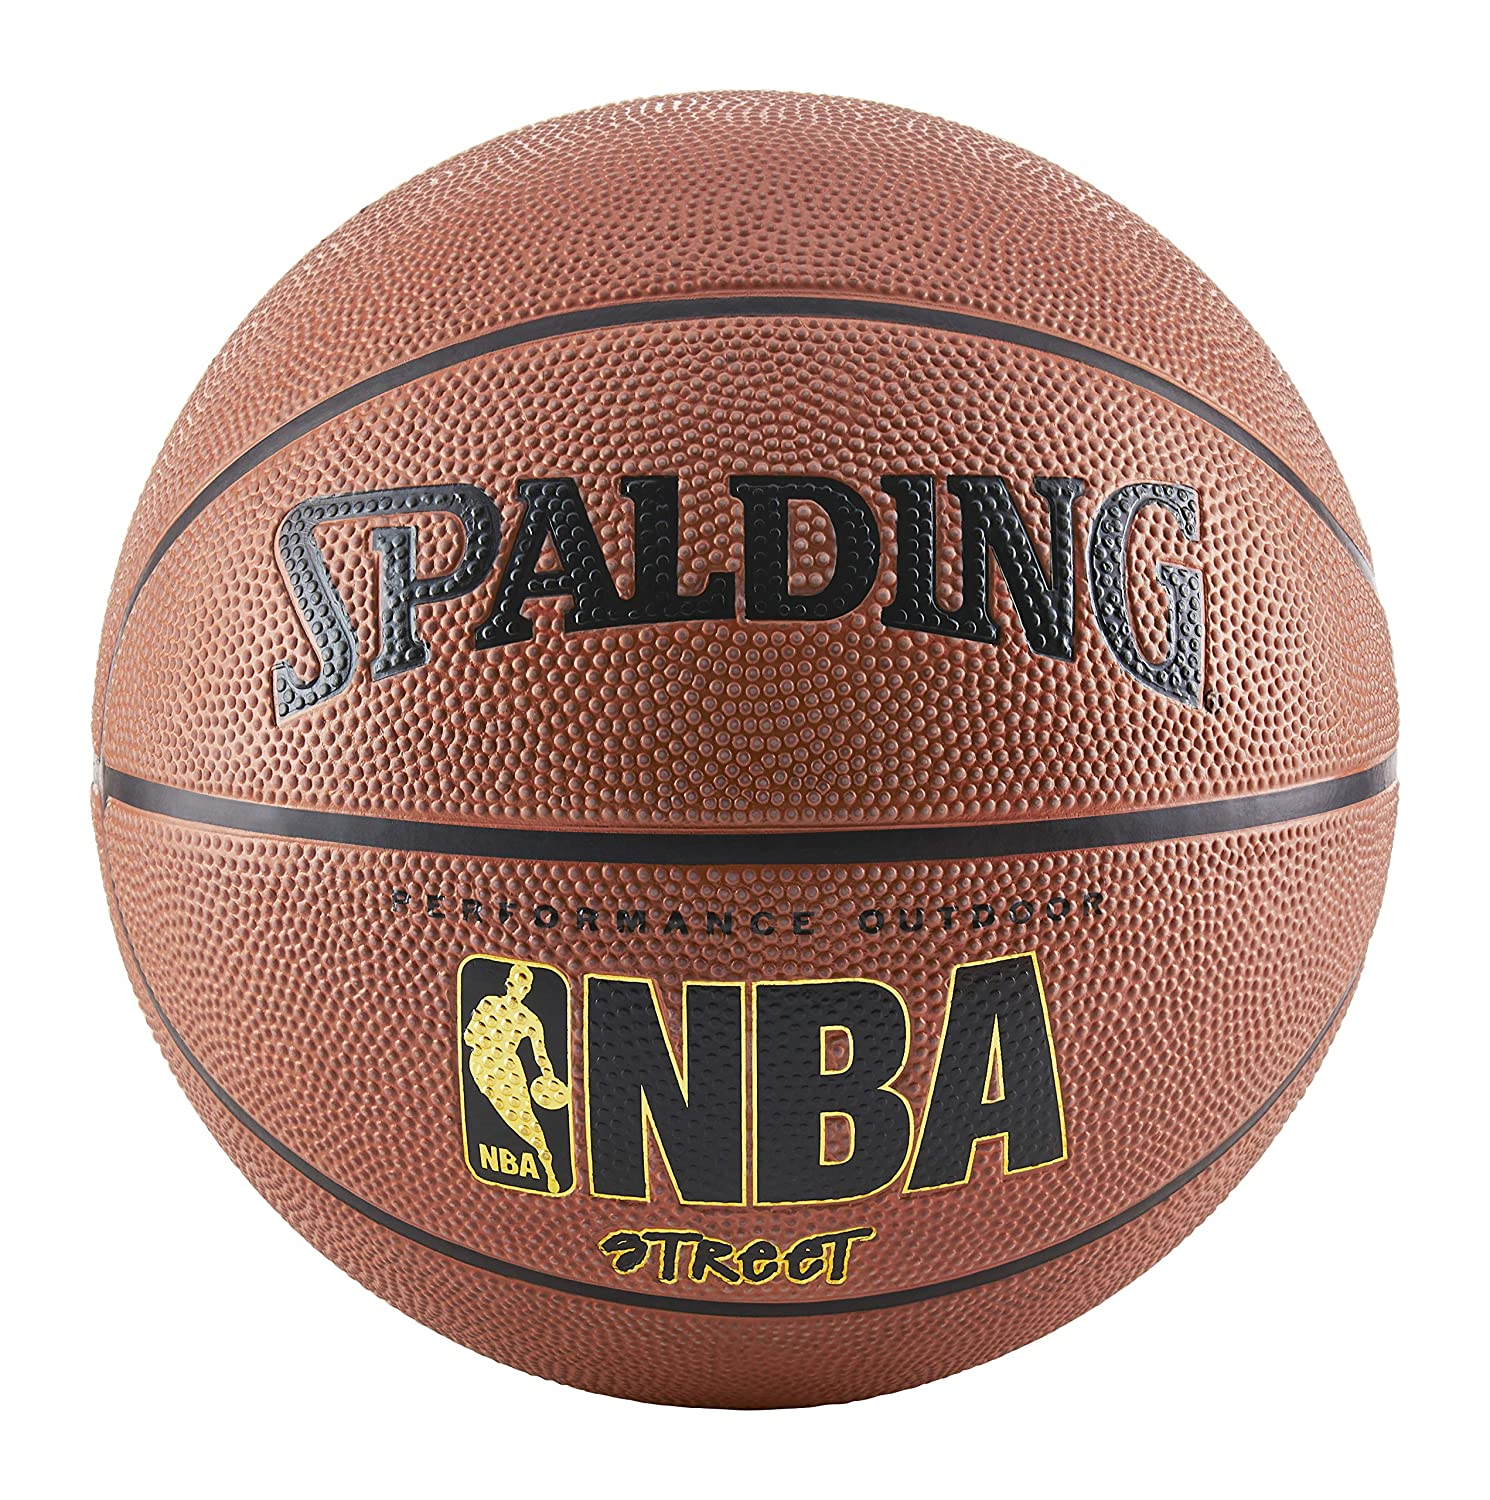 Spalding NBA Ballon de Basketball de Rue 10207 Orange Intermediate Size 6 (28.5)